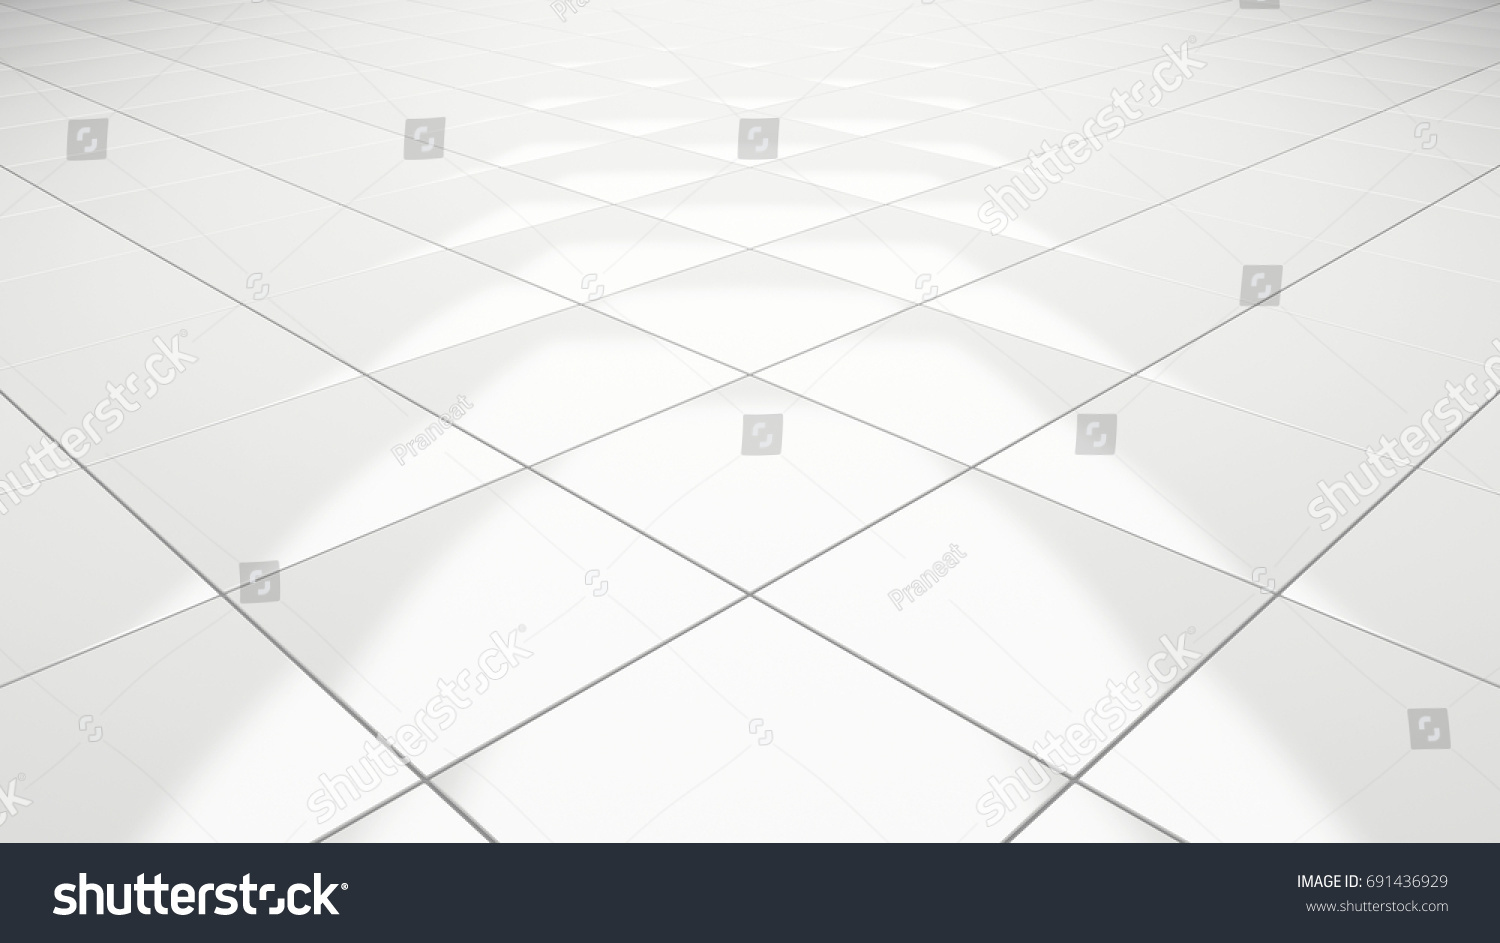 How to clean white tile floors choice image home flooring design clean white tile floor 3d rendering stock illustration 691436929 clean white tile floor 3d rendering perspective doublecrazyfo Gallery